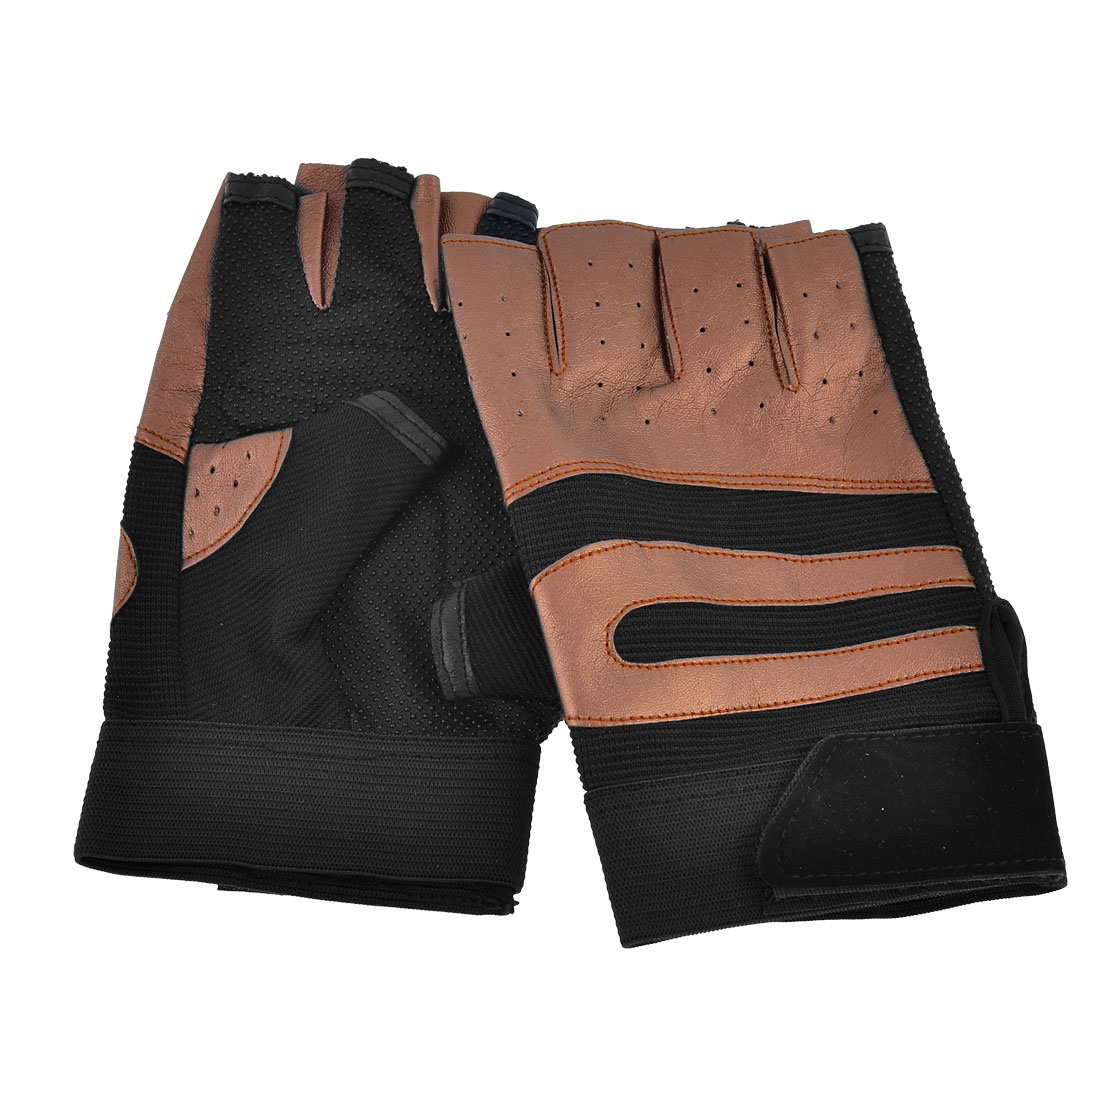 Adults Breath Freely Sports Cycling Climbing Half Finger Glove Pair Black Brown